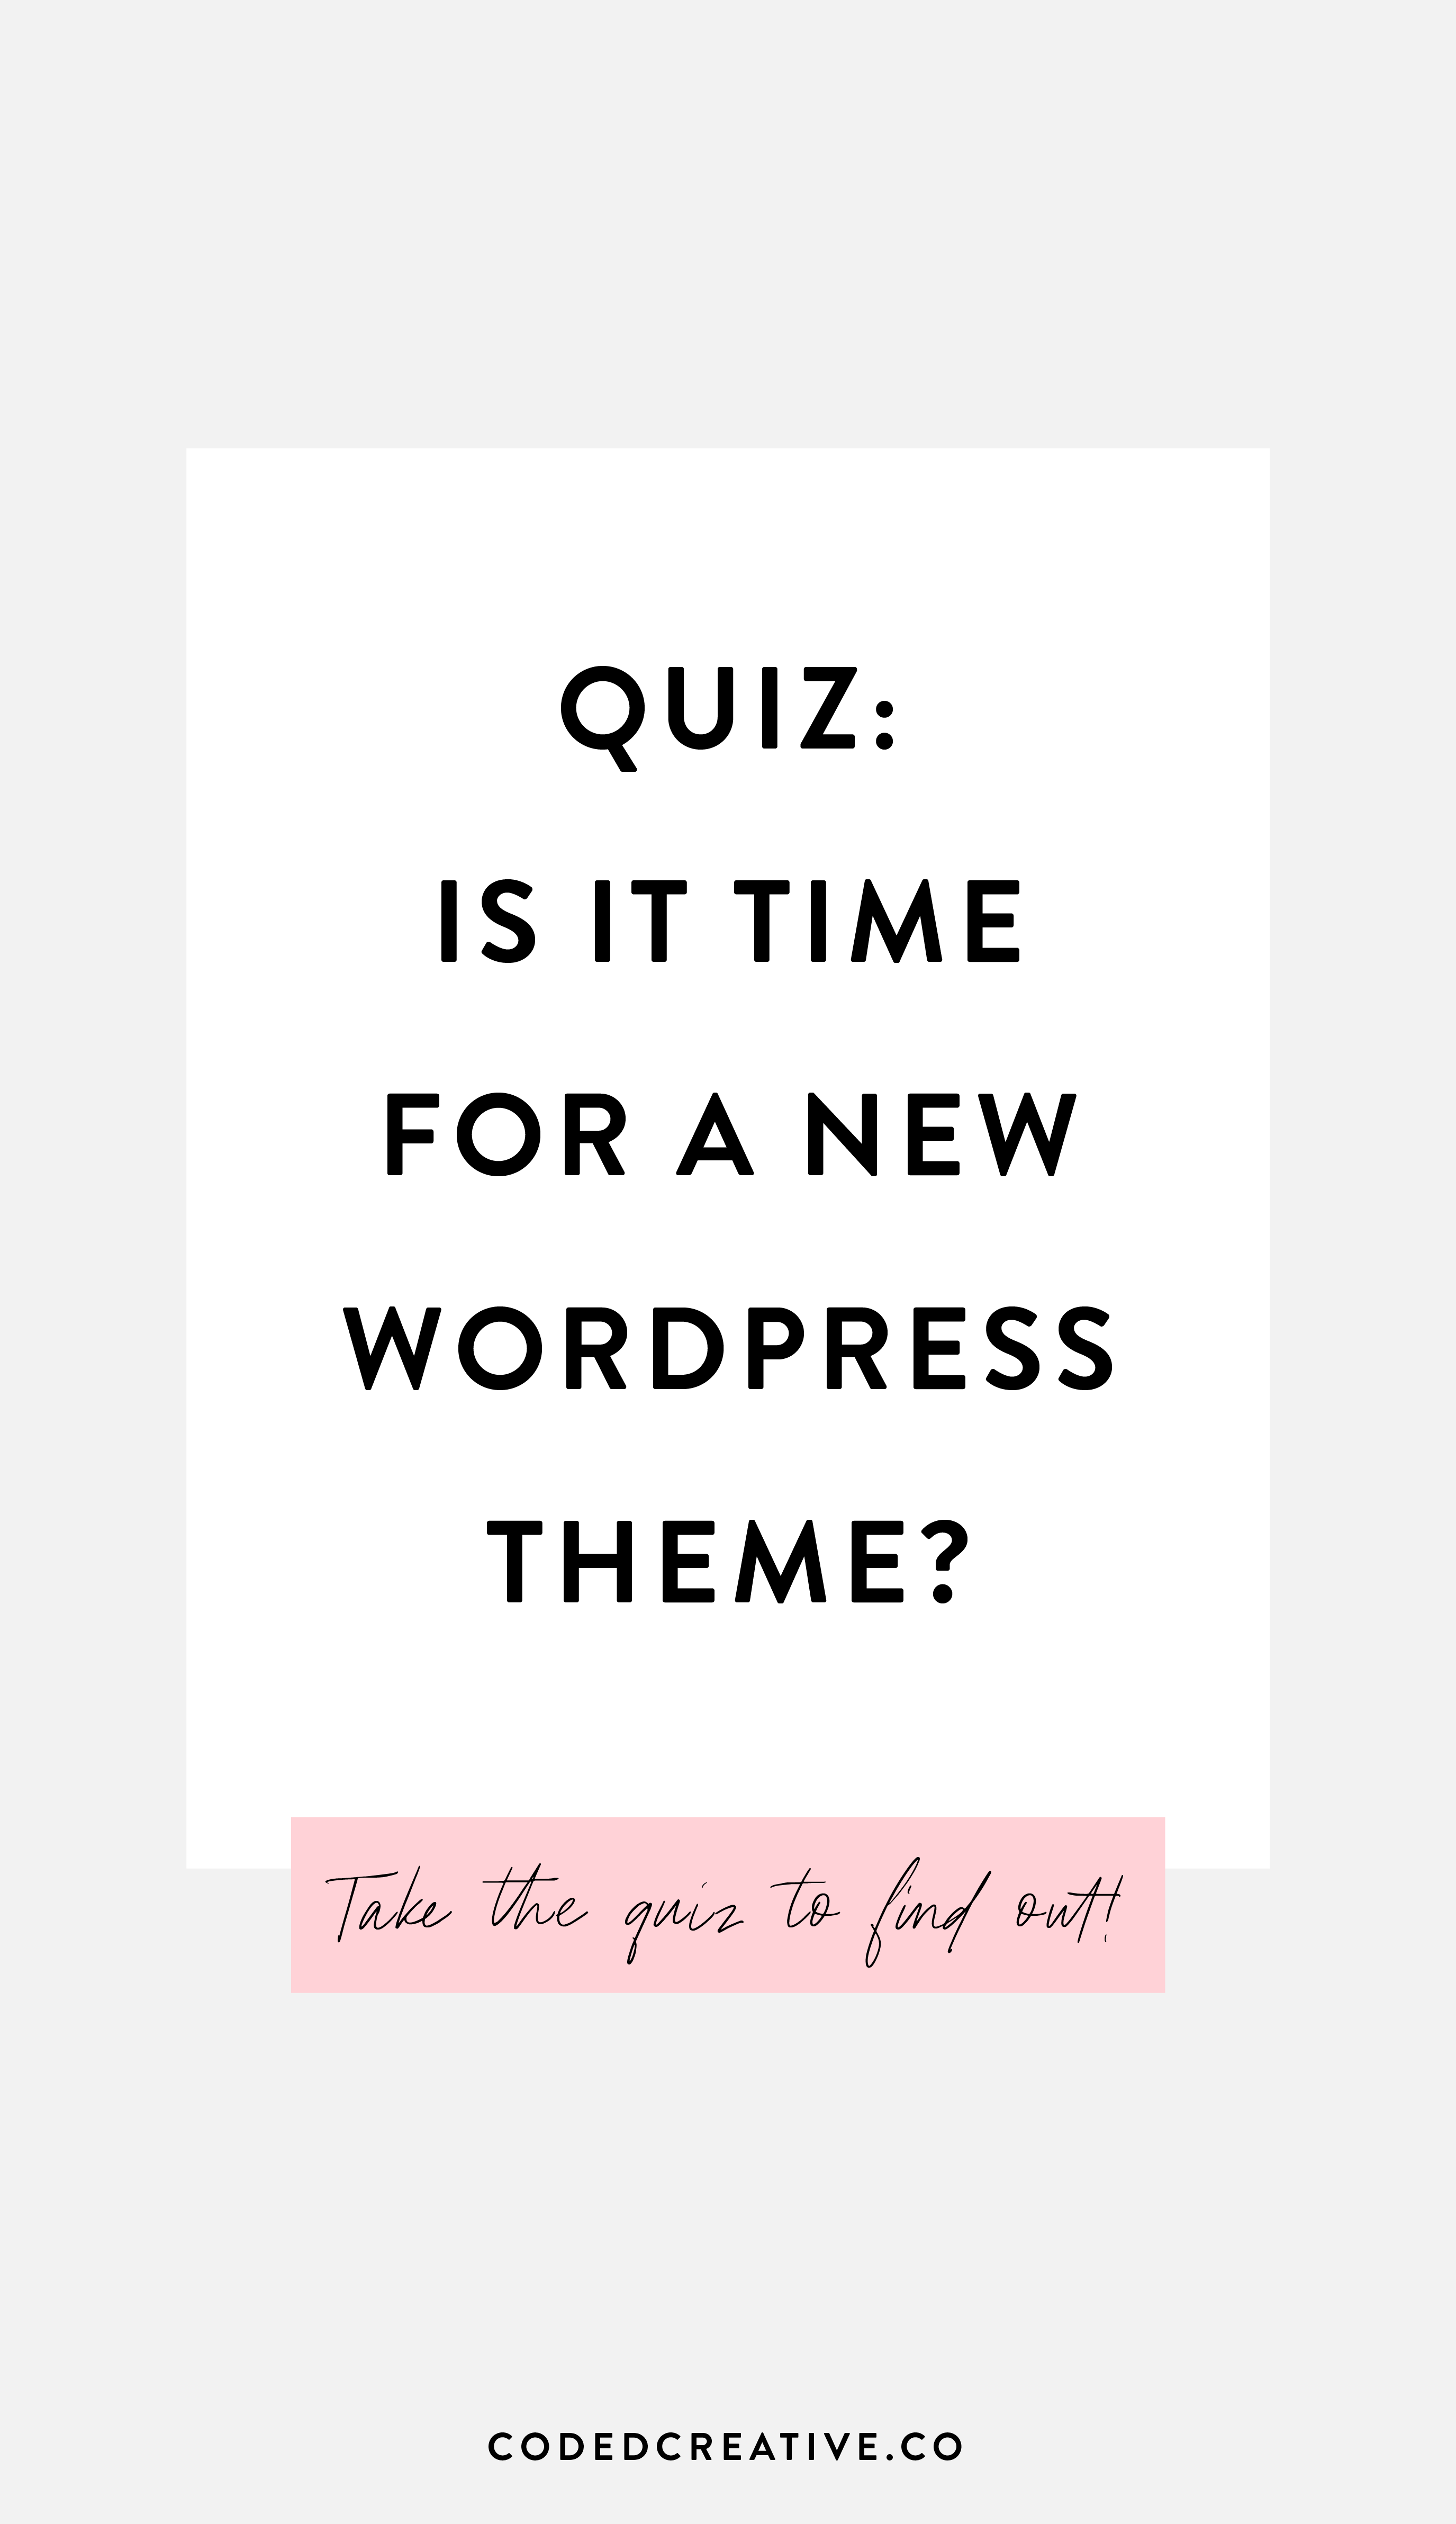 Quiz: Is it time for a new WordPress theme in 2019 | coded creative